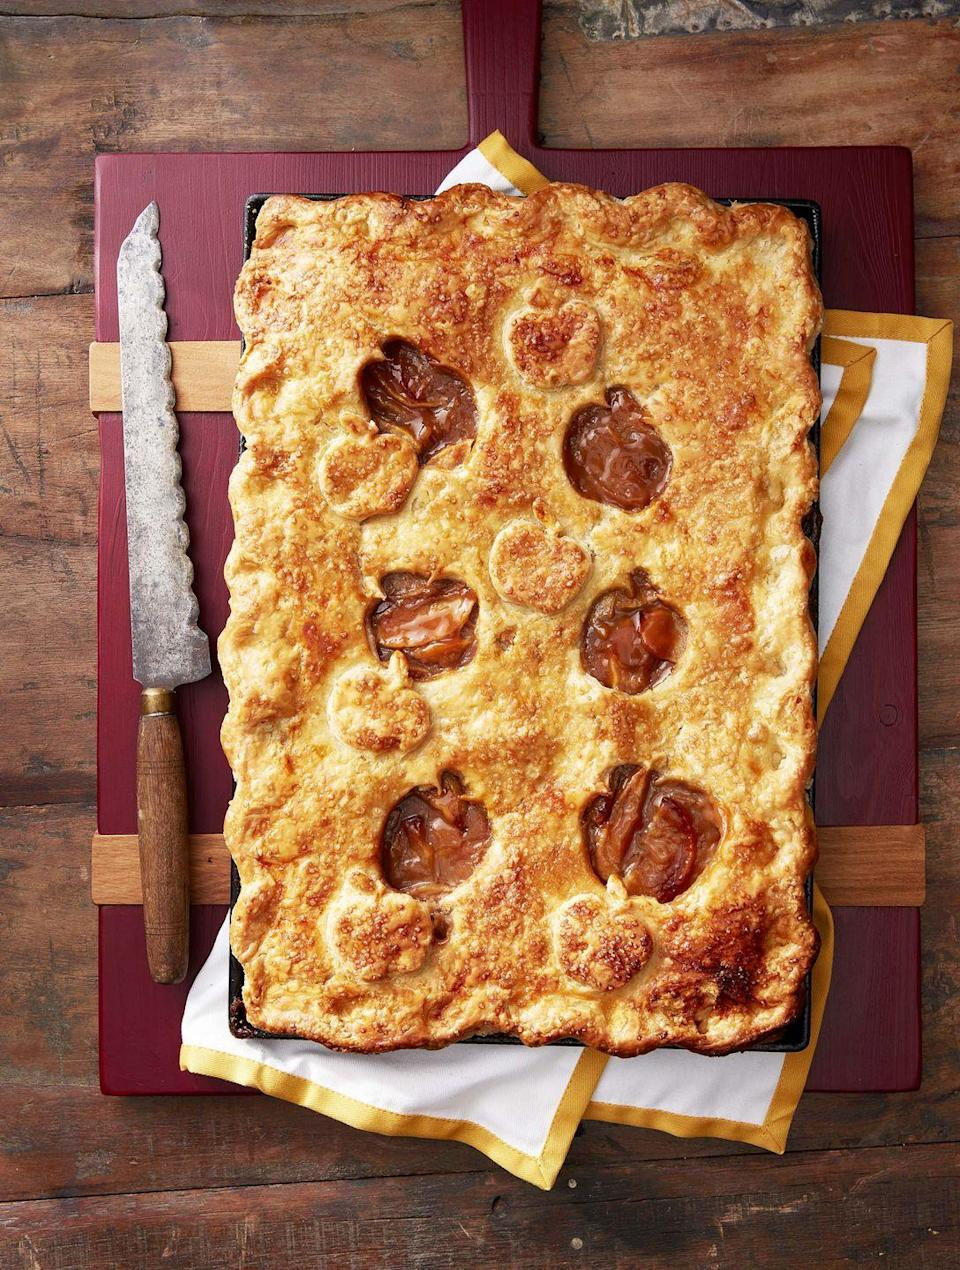 """<p>Feeding a crowd? This impressive-looking centerpiece dessert guarantees everyone gets a slice.</p><p><strong><a href=""""https://www.countryliving.com/food-drinks/a34275052/salted-caramel-apple-slab-pie-recipe/"""" rel=""""nofollow noopener"""" target=""""_blank"""" data-ylk=""""slk:Get the recipe"""" class=""""link rapid-noclick-resp"""">Get the recipe</a>.</strong> </p>"""